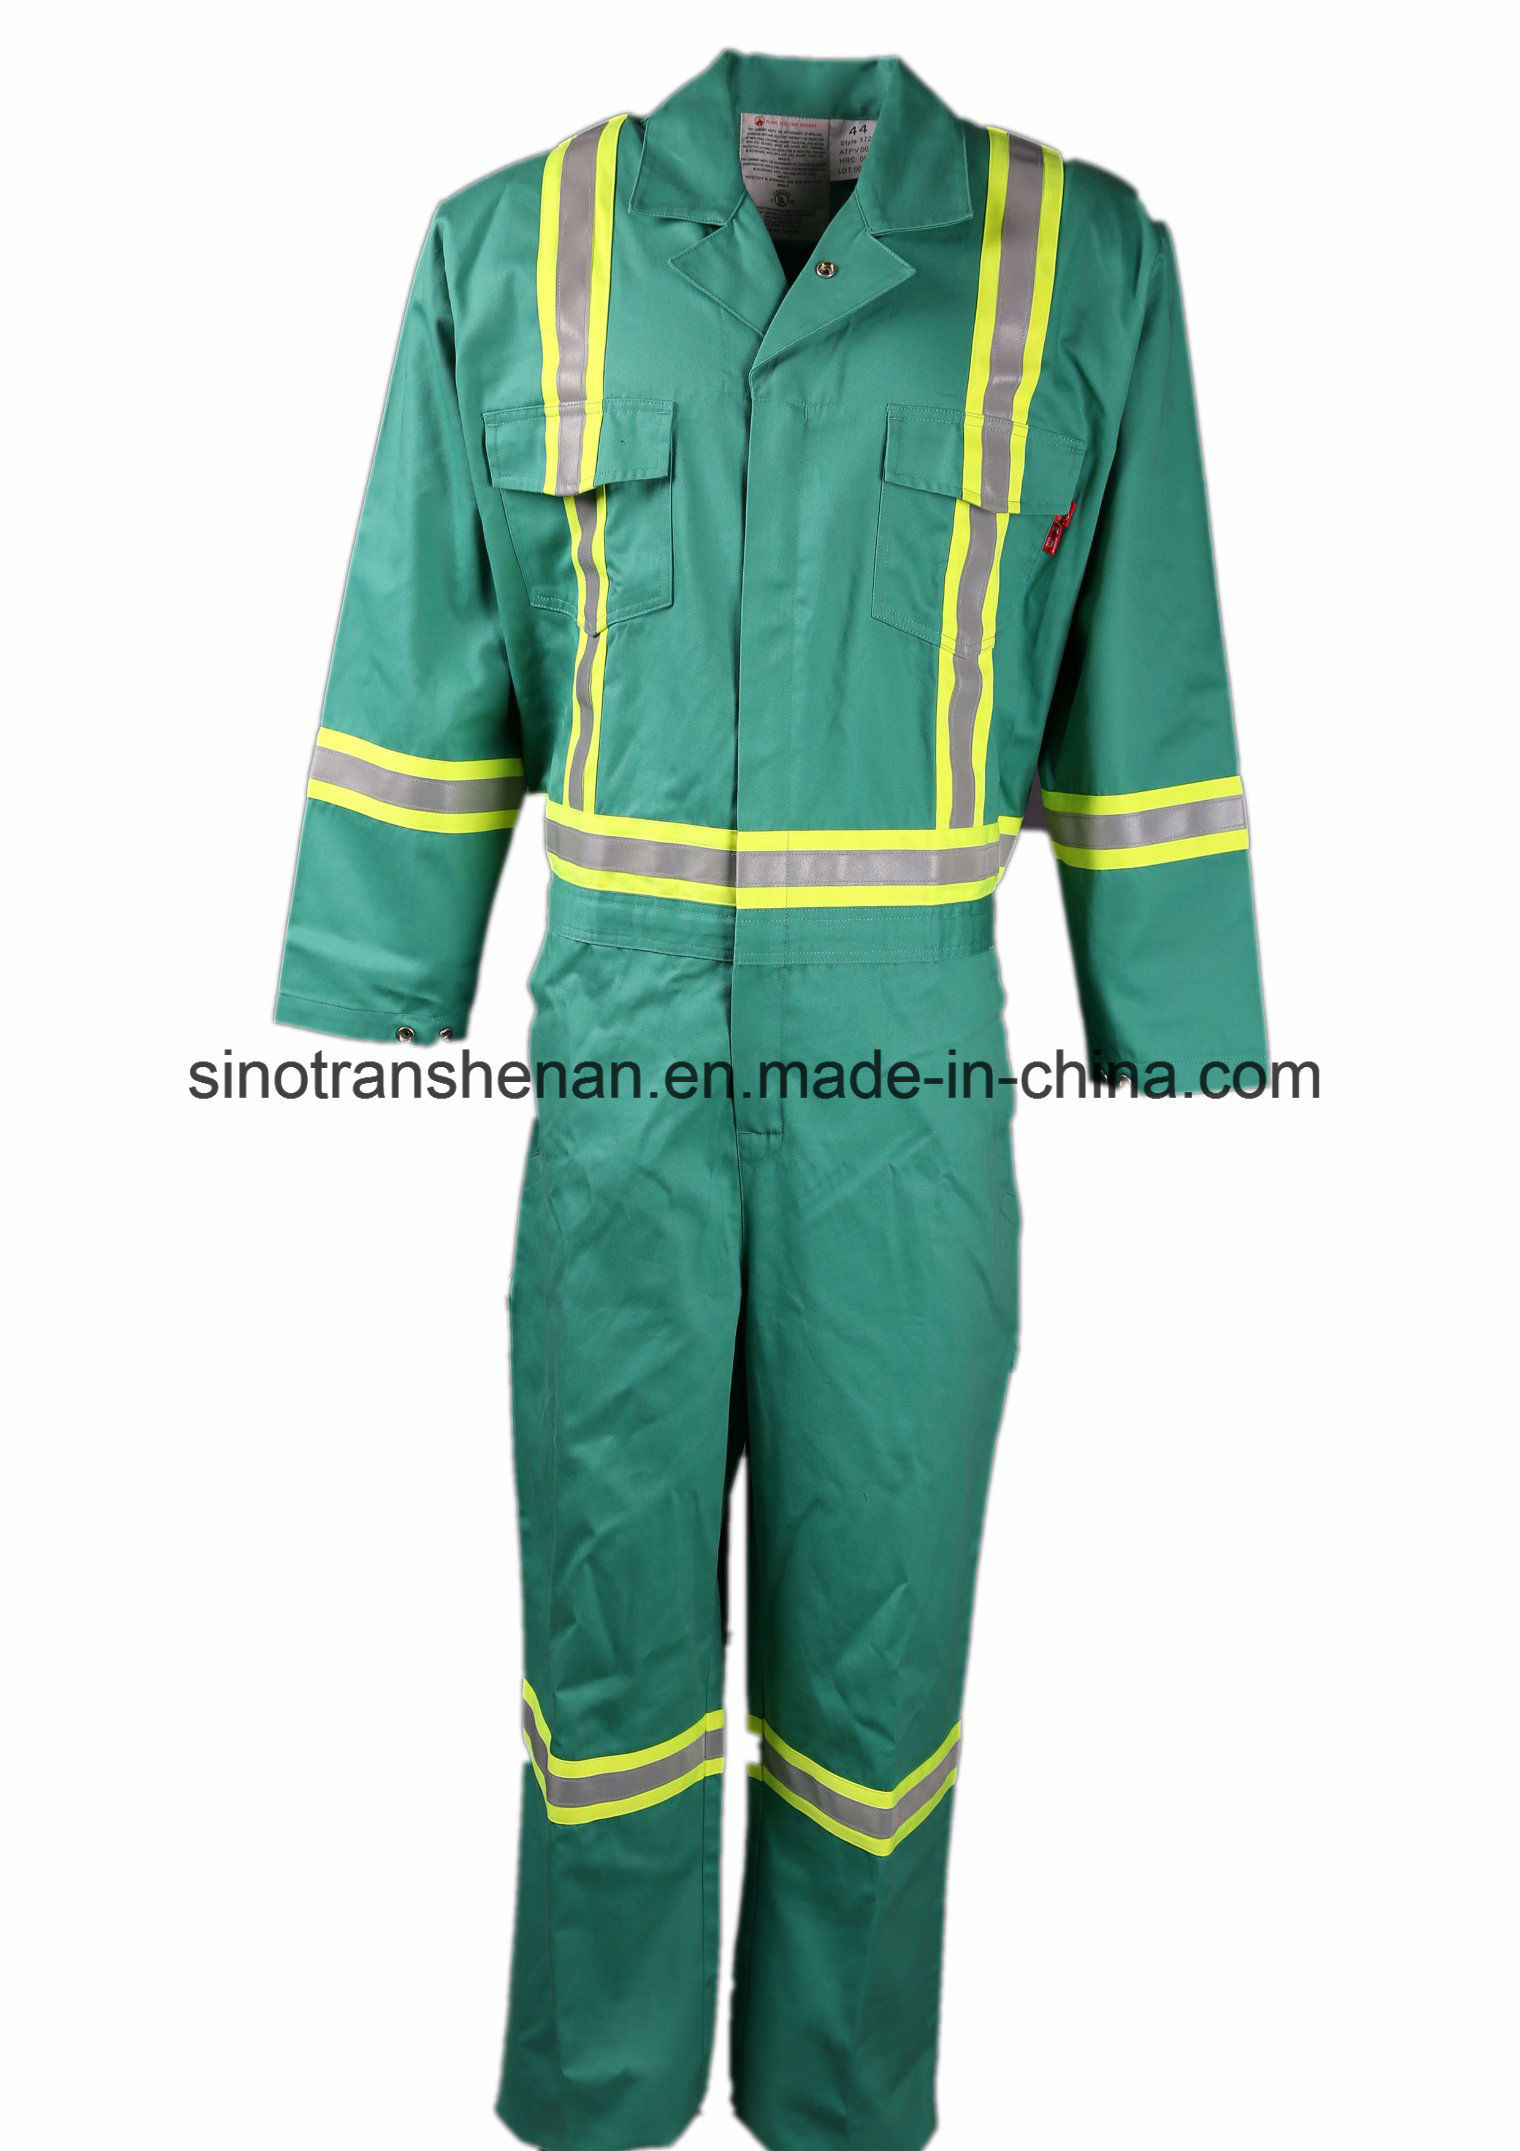 Nfpa2112-2012 Fr Coverall Flame Retardant Workwear